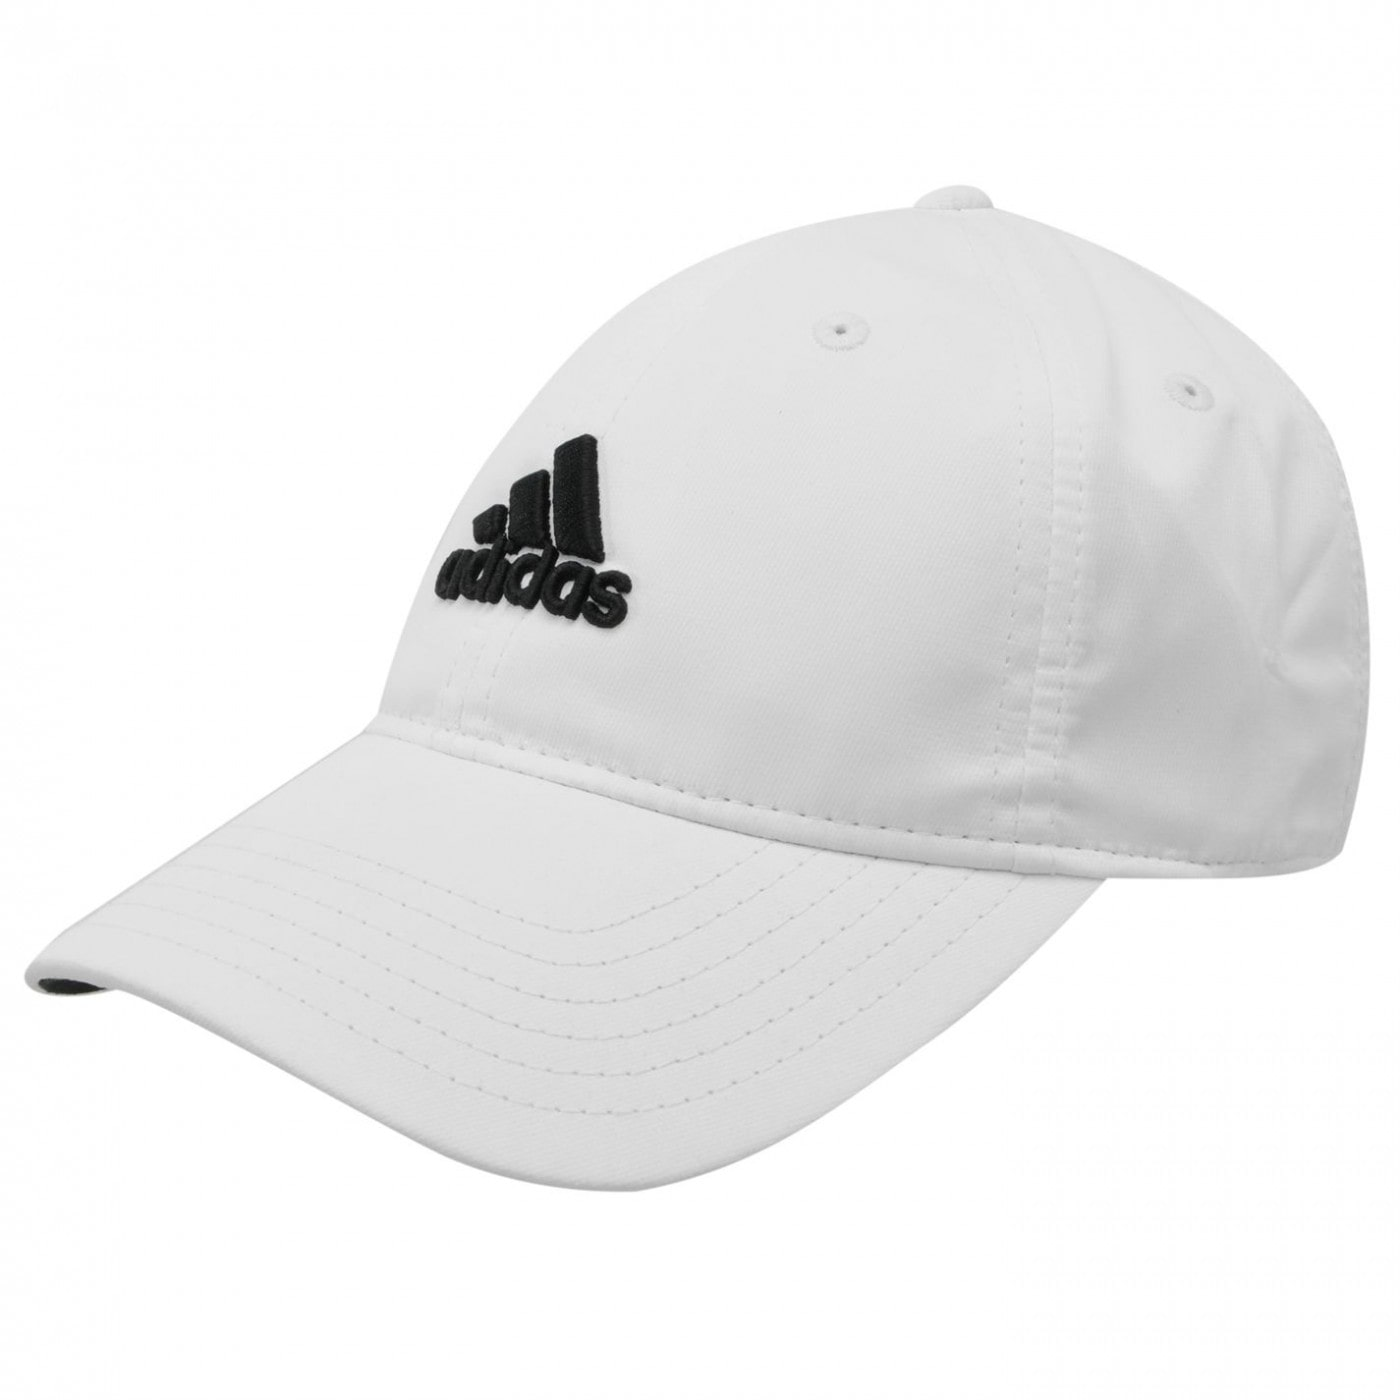 09faee5a Adidas Golf Cap Mens - FACTCOOL